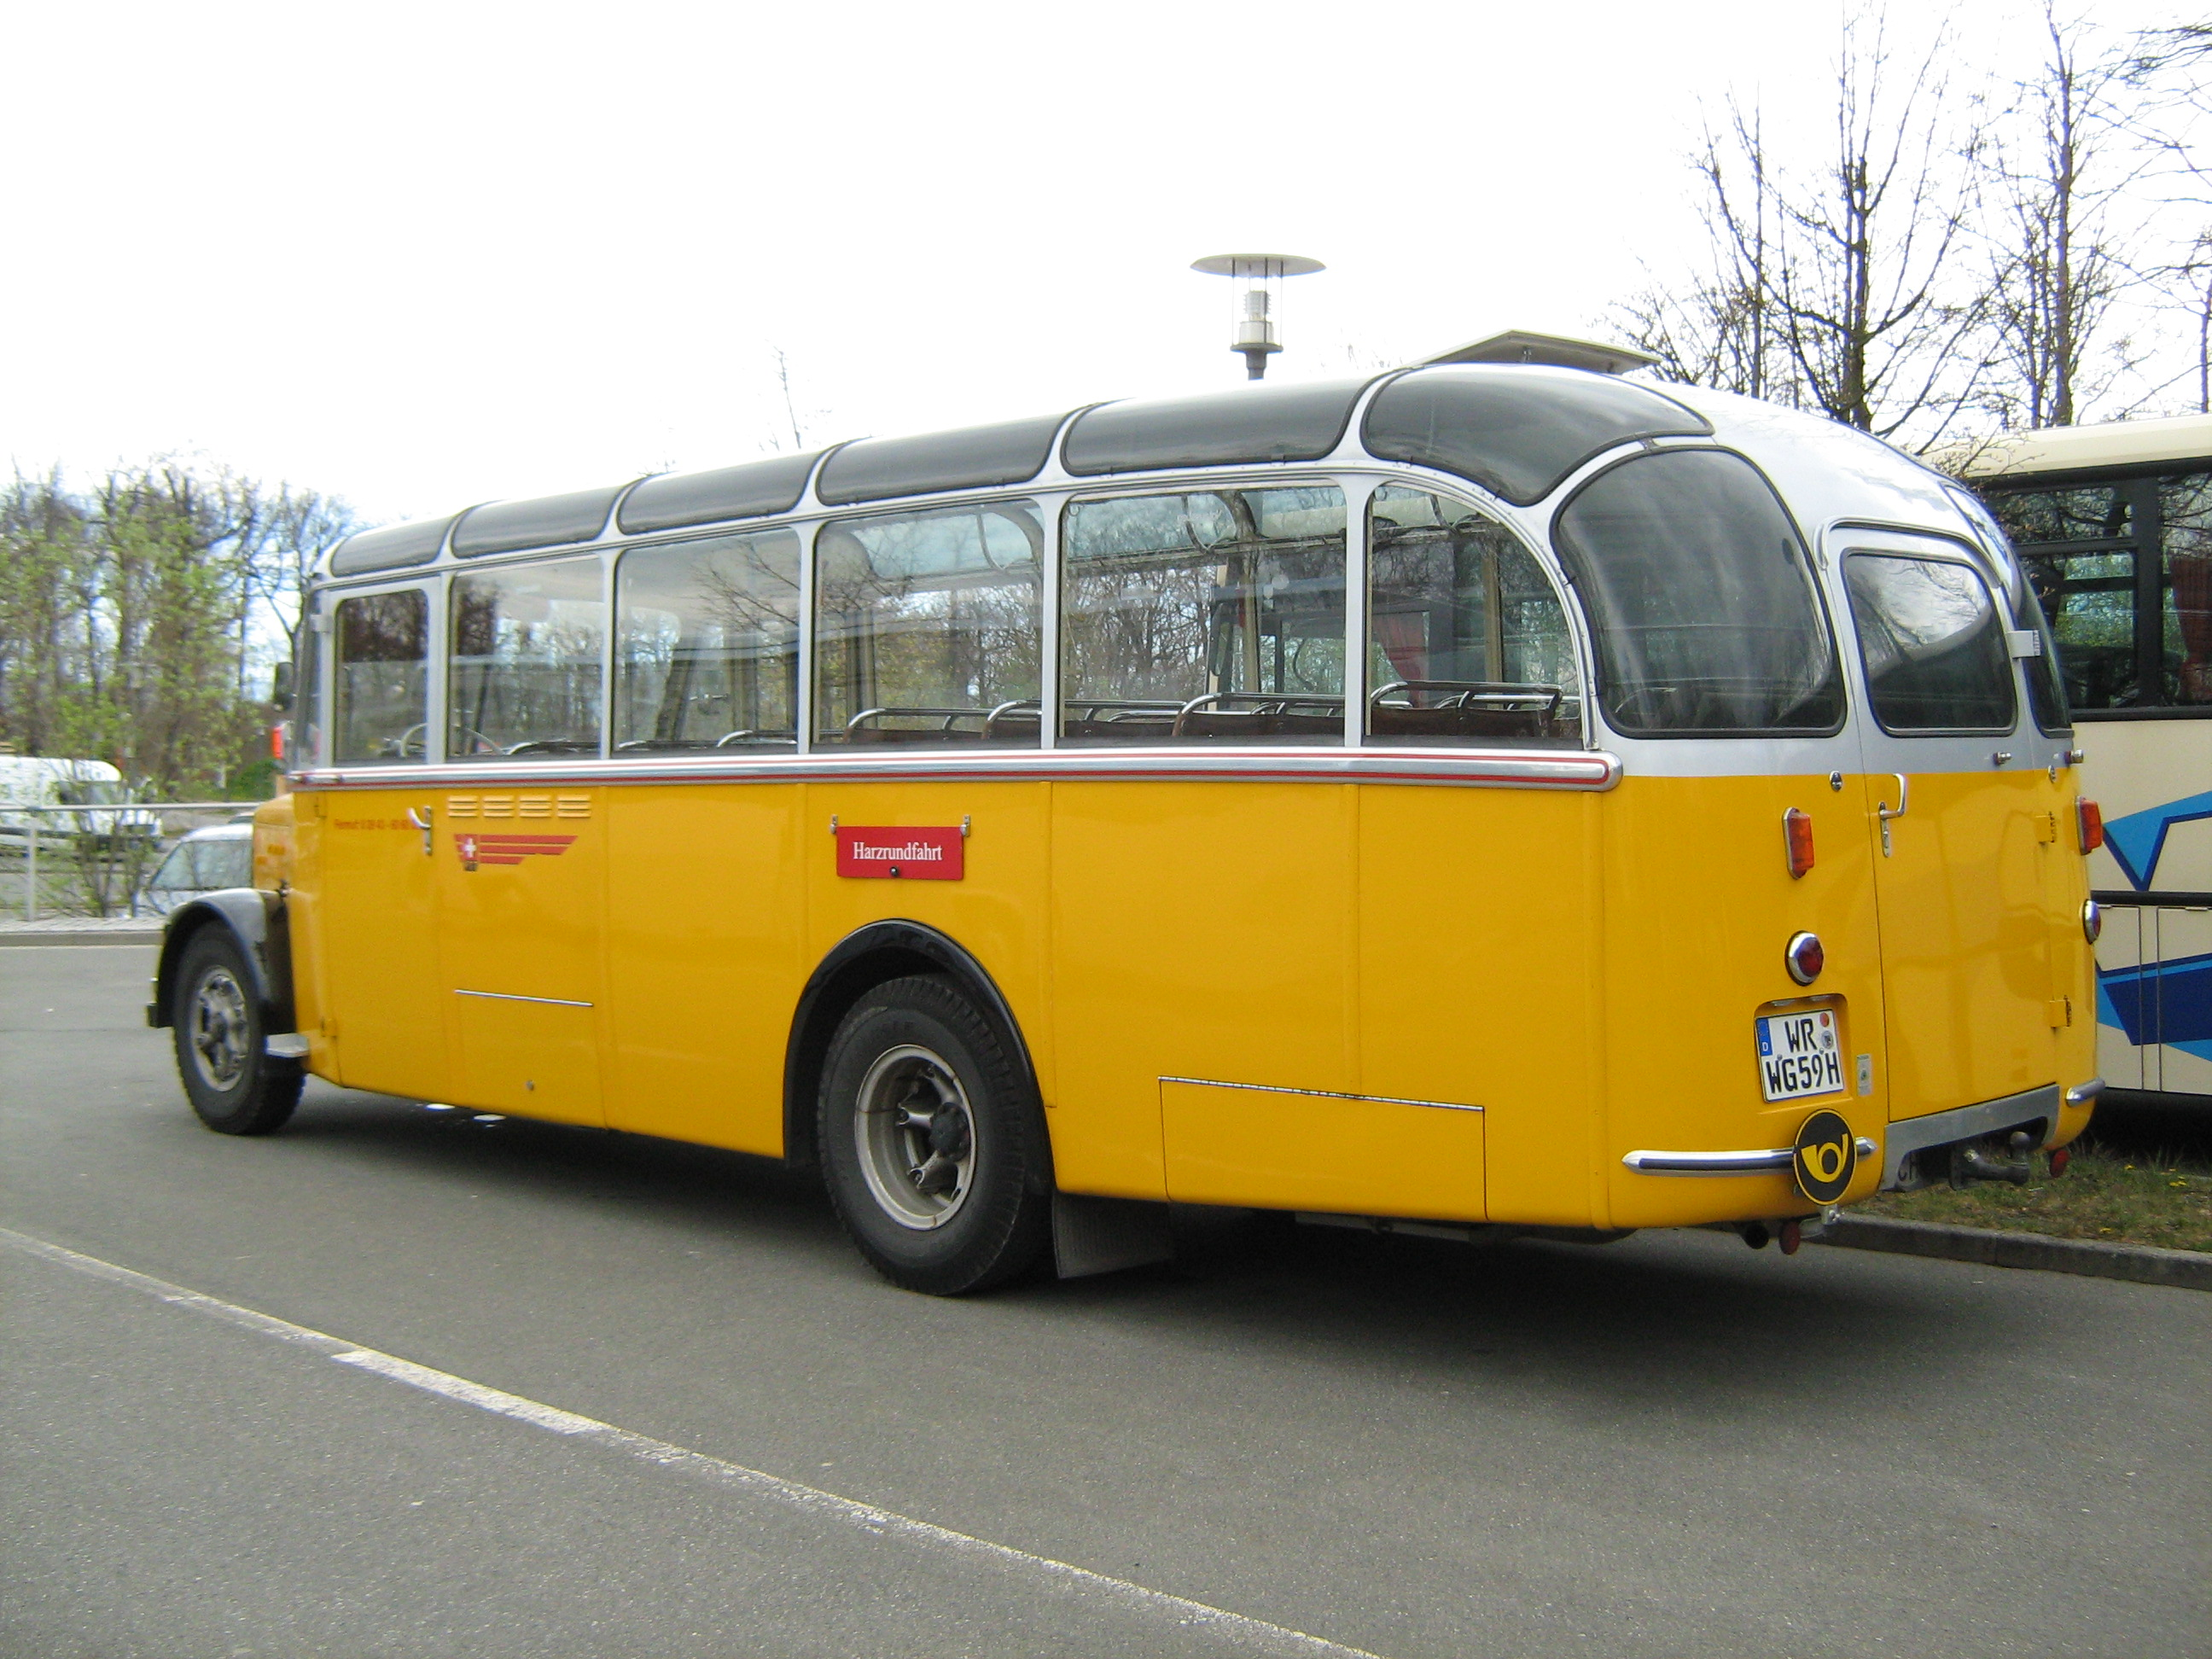 Saurer postbus photo - 6